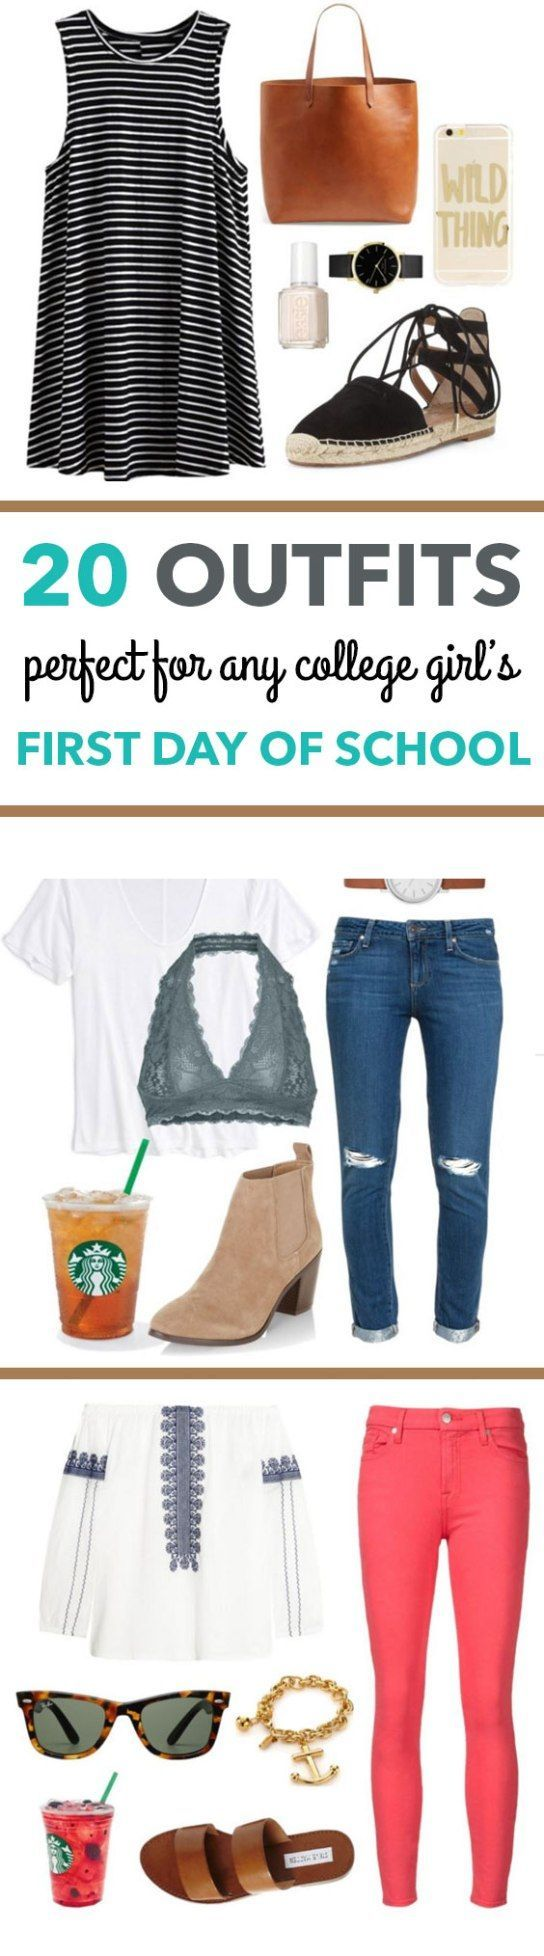 If you're anything like me, then you want your first day of school outfit to #firstdayofschooloutfits